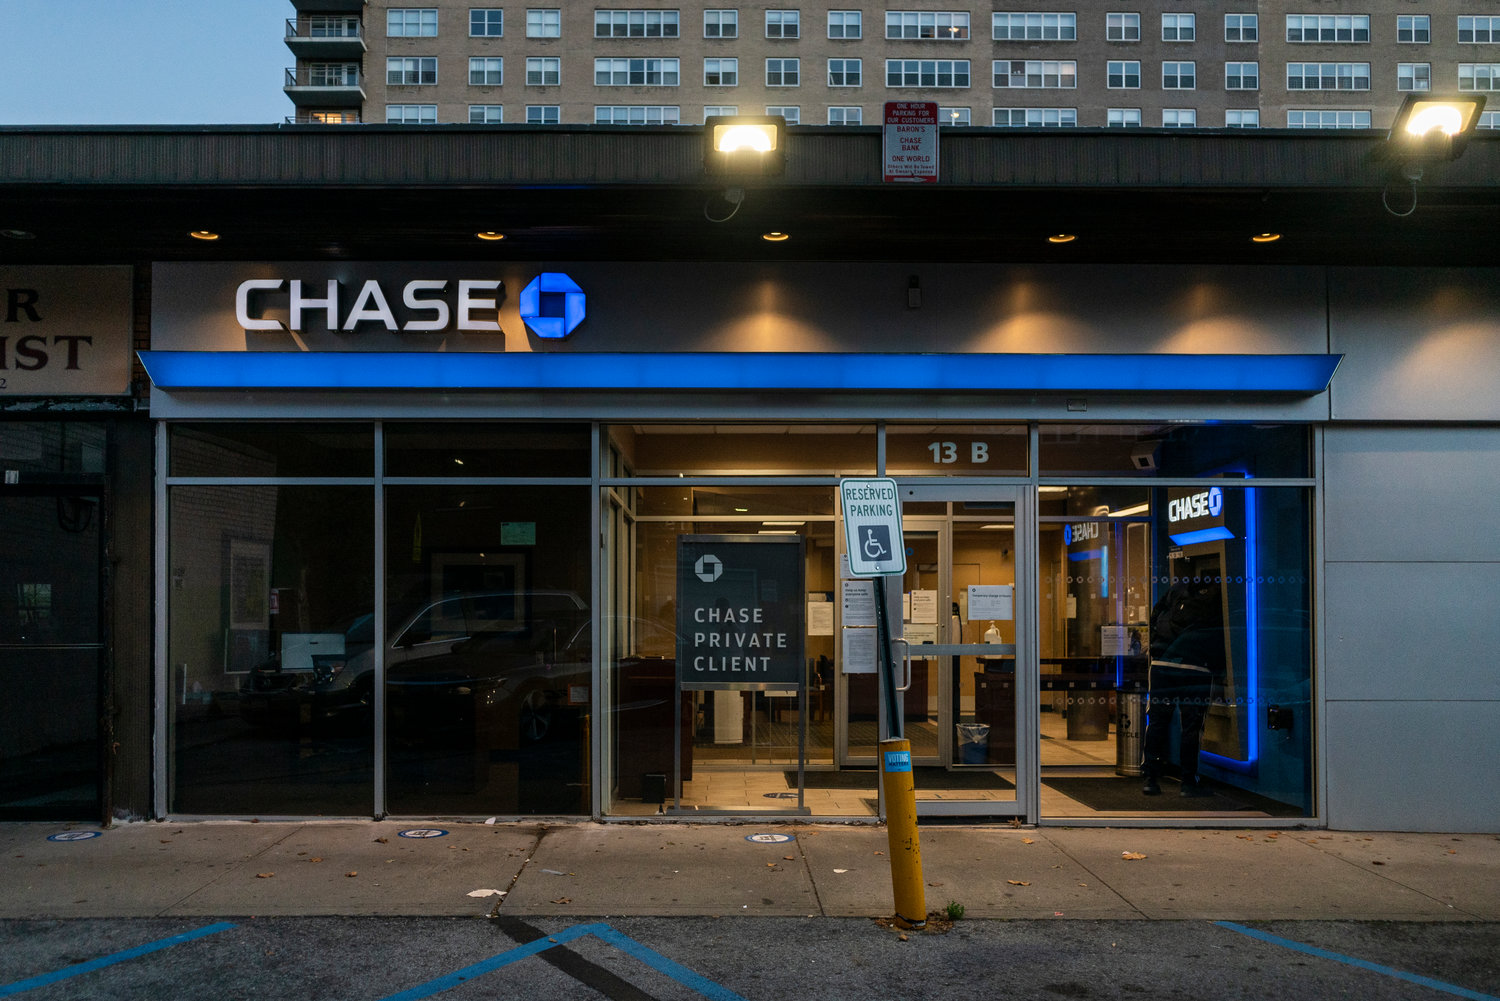 The impending closure of Chase Bank on Knolls Crescent has prompted rallies, community board resolutions, and many social media posts — all imploring JPMorgan Chase to keep the branch open.